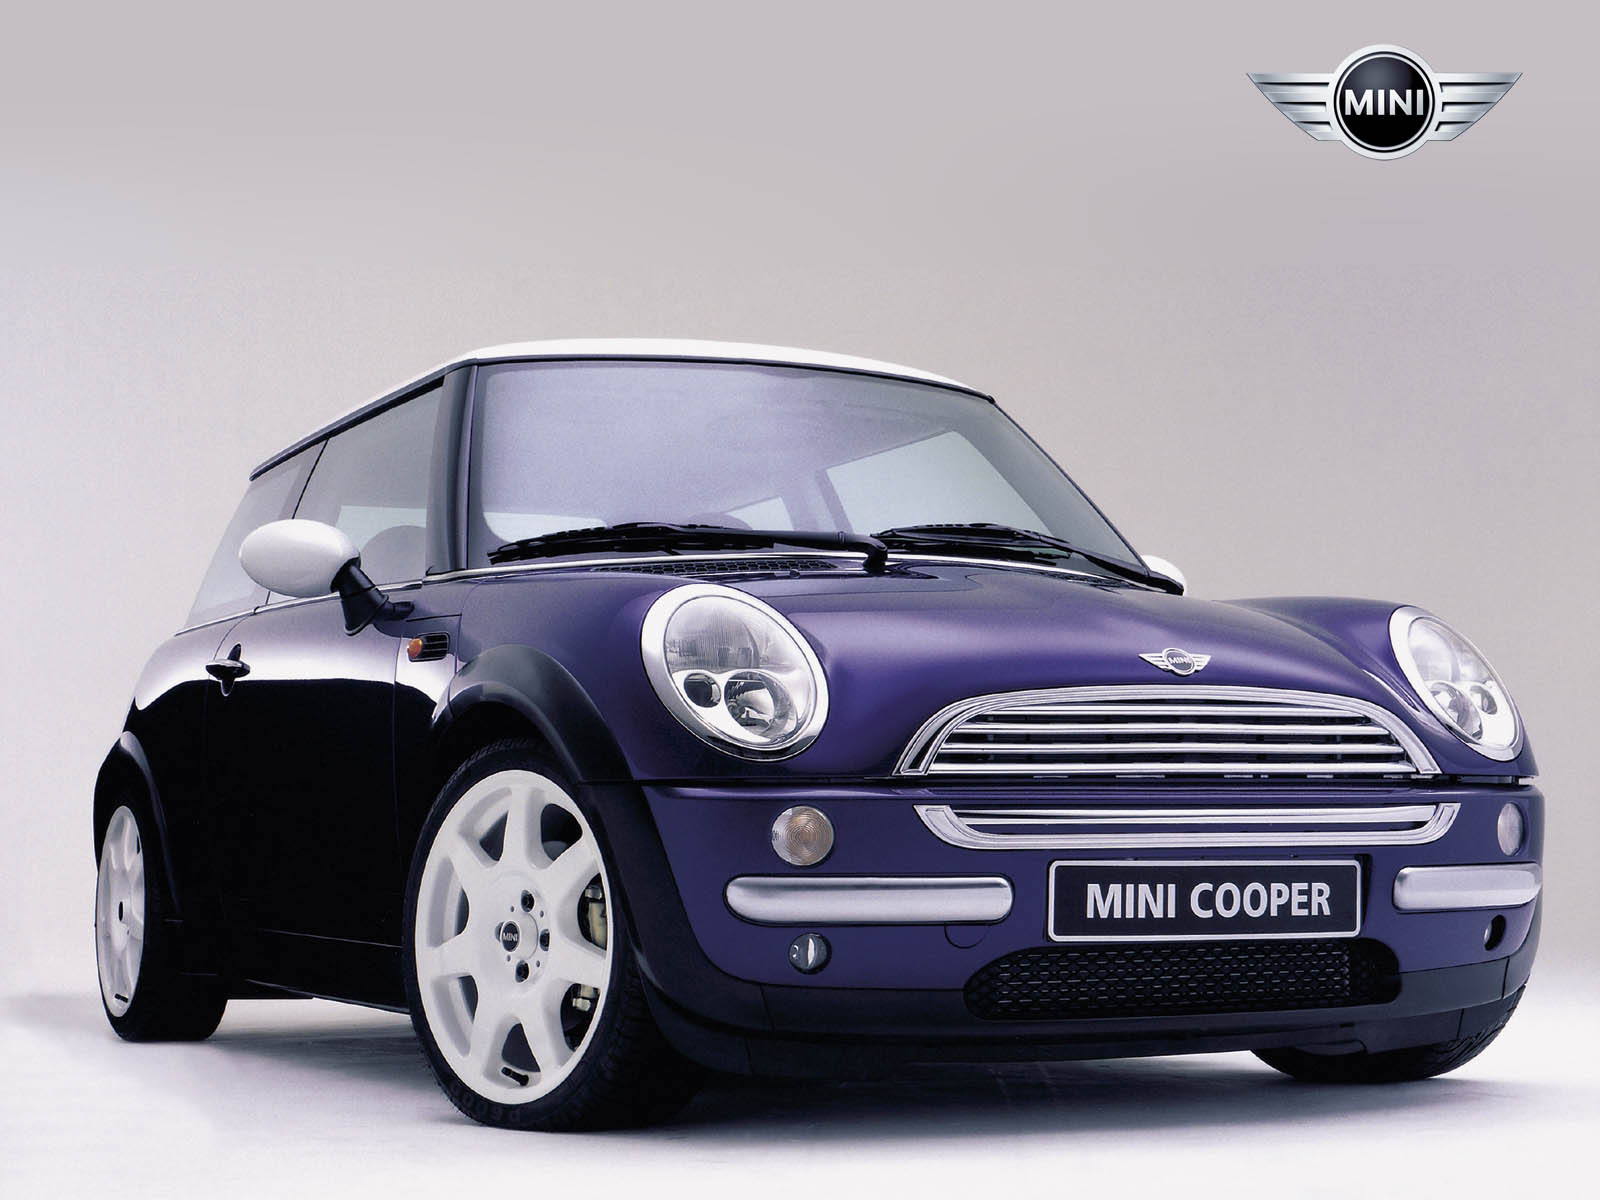 mini cooper background bmw mini cooper 1600x1200. Black Bedroom Furniture Sets. Home Design Ideas